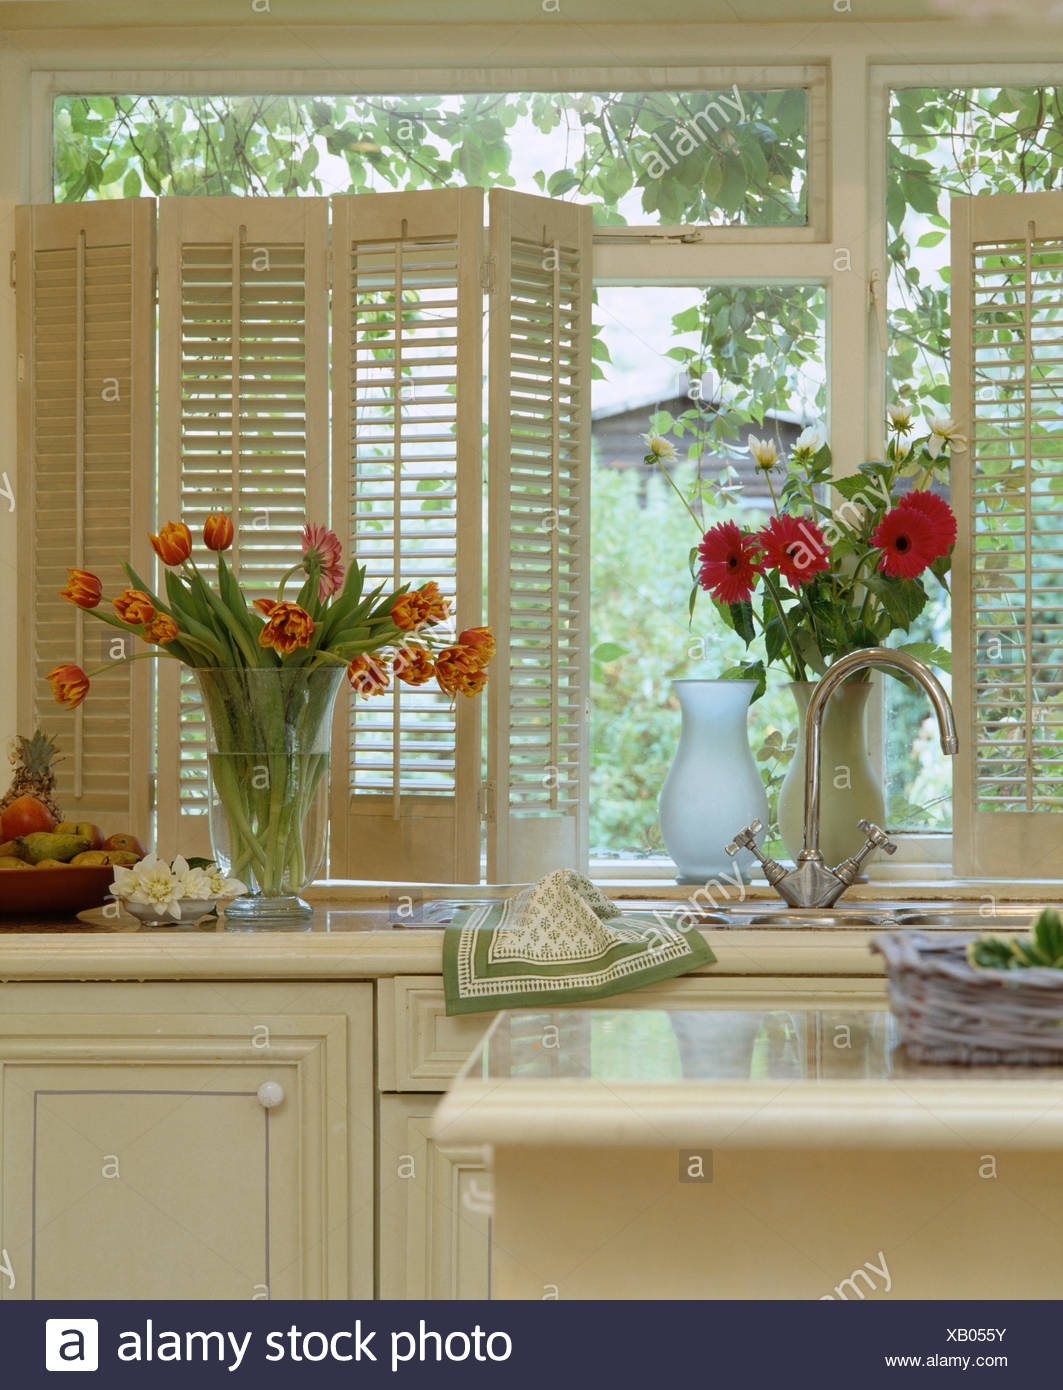 Red Gerberas And Orange Striped Tulips In Glass Vases On